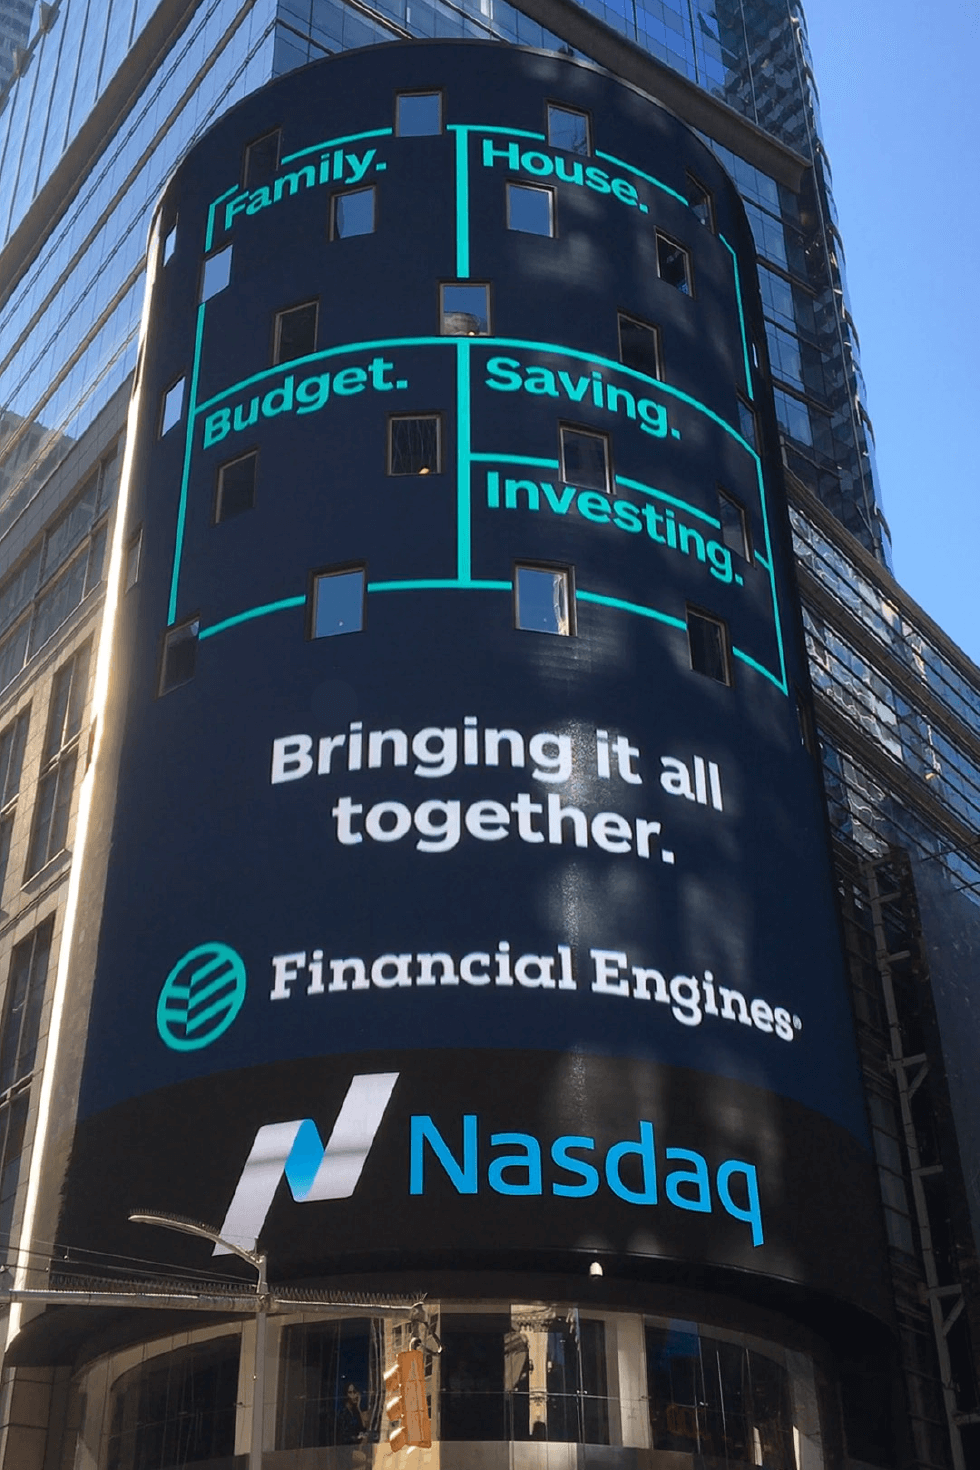 Financial Engines NASDAQ